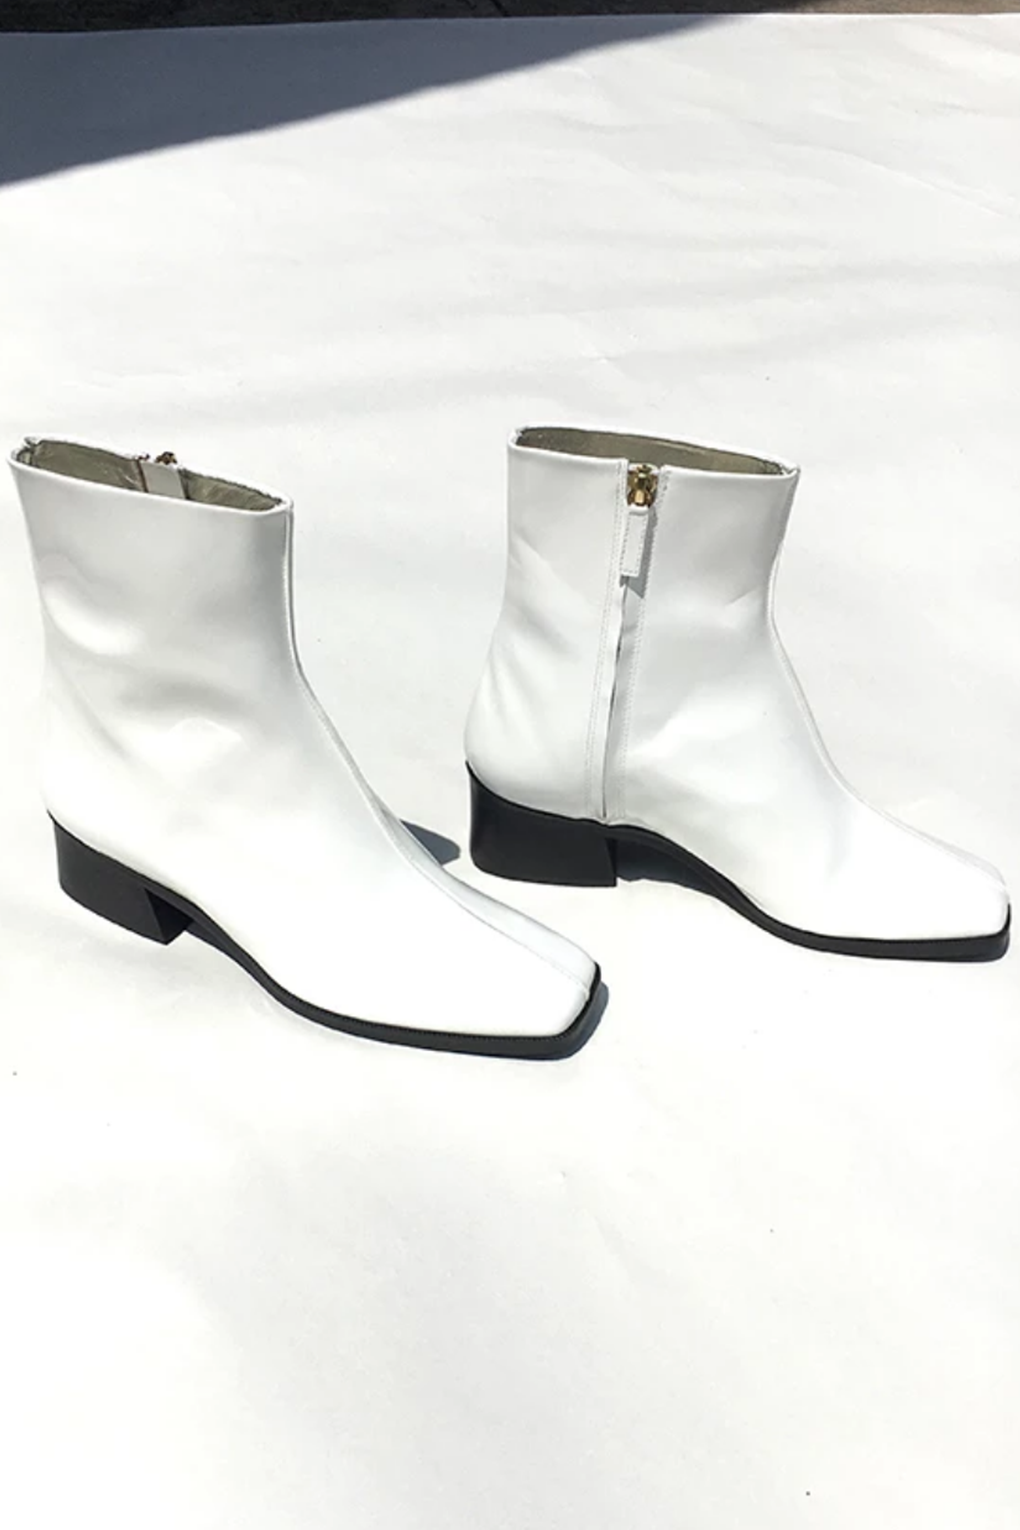 Idun-Saint Paul-Suzanne Rae Welt Sole Boot-White Boots-Leather Boots-Fall Boots